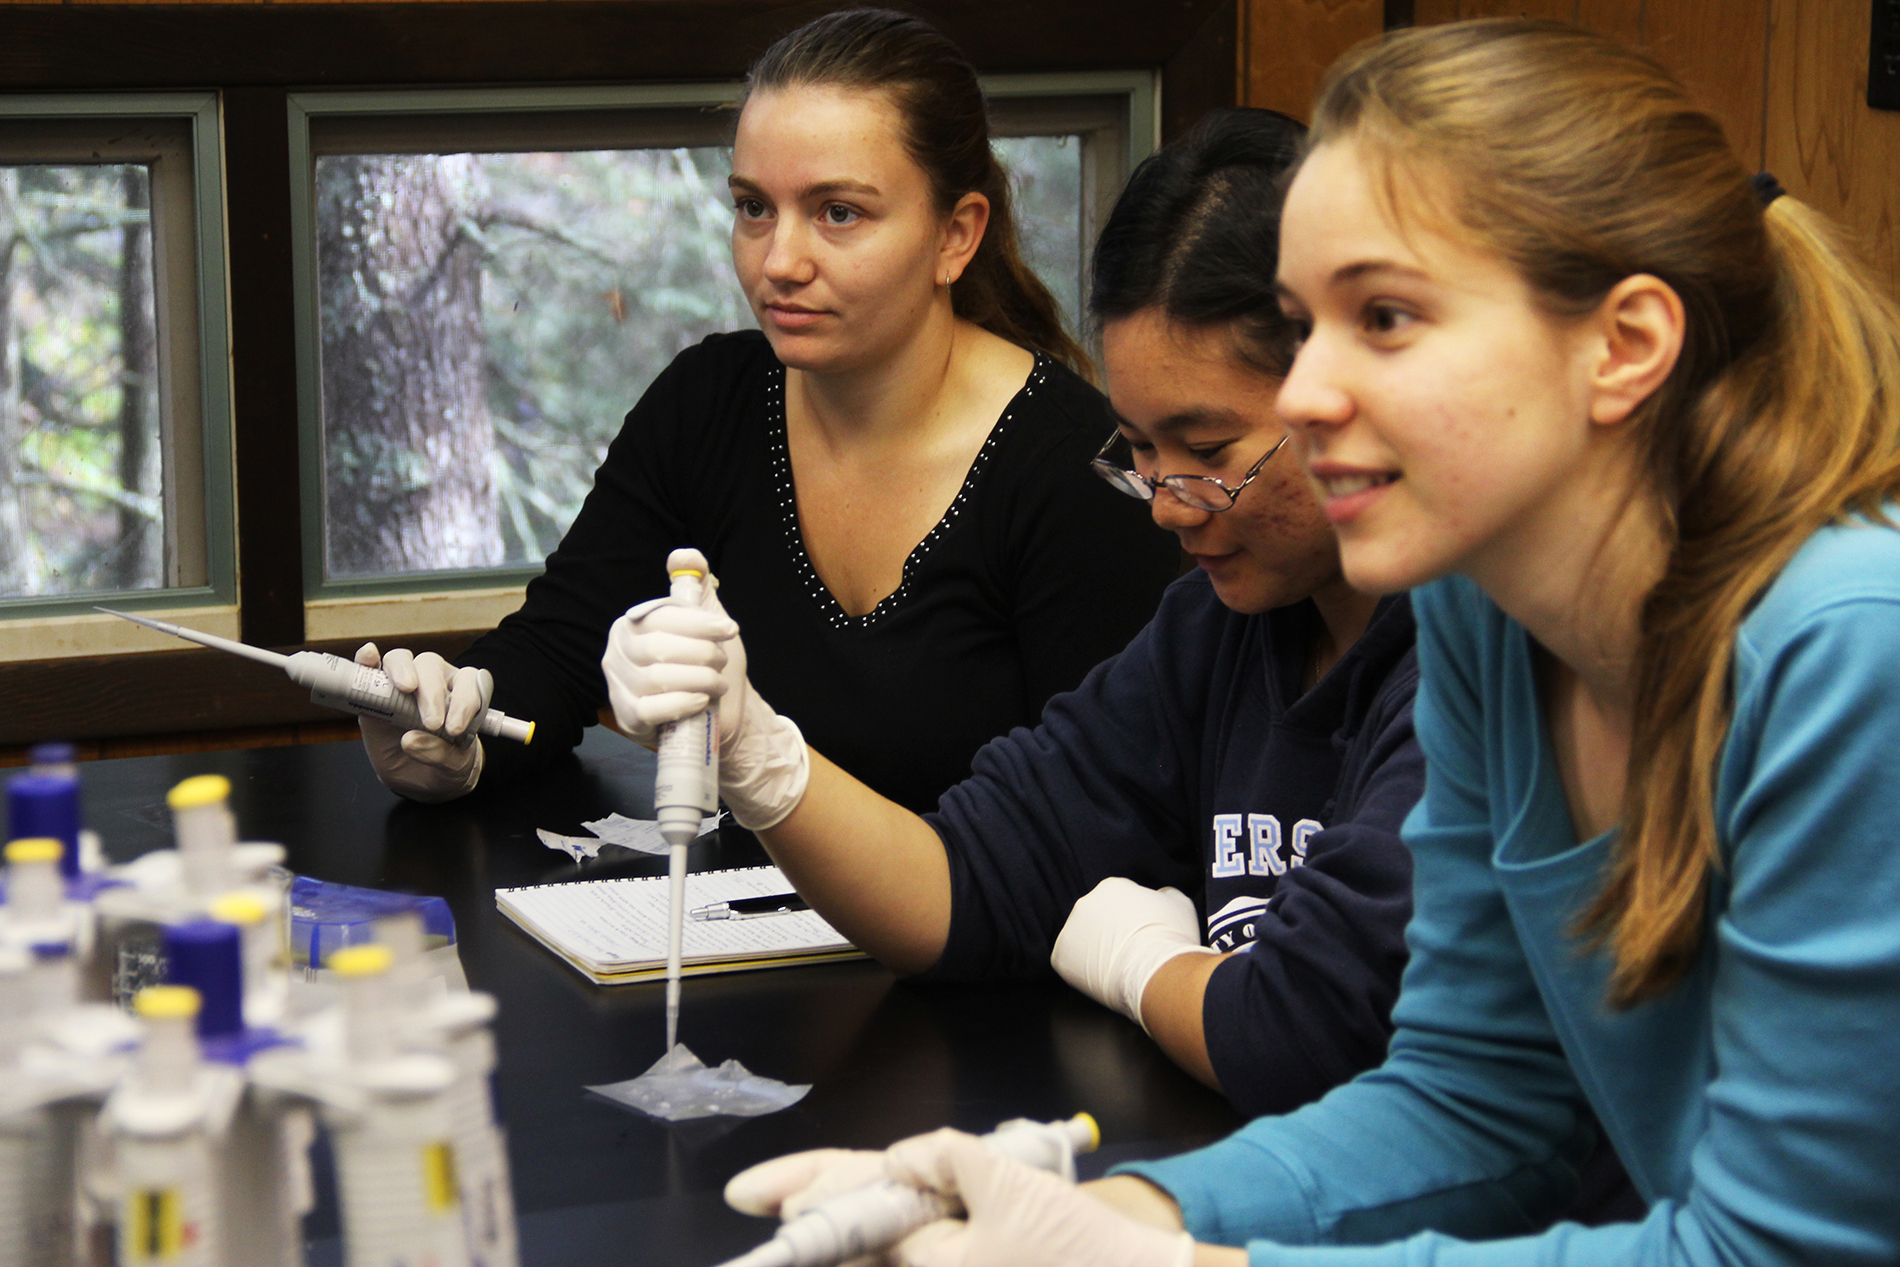 students practice pipetting while listening to Apodaca's instructions